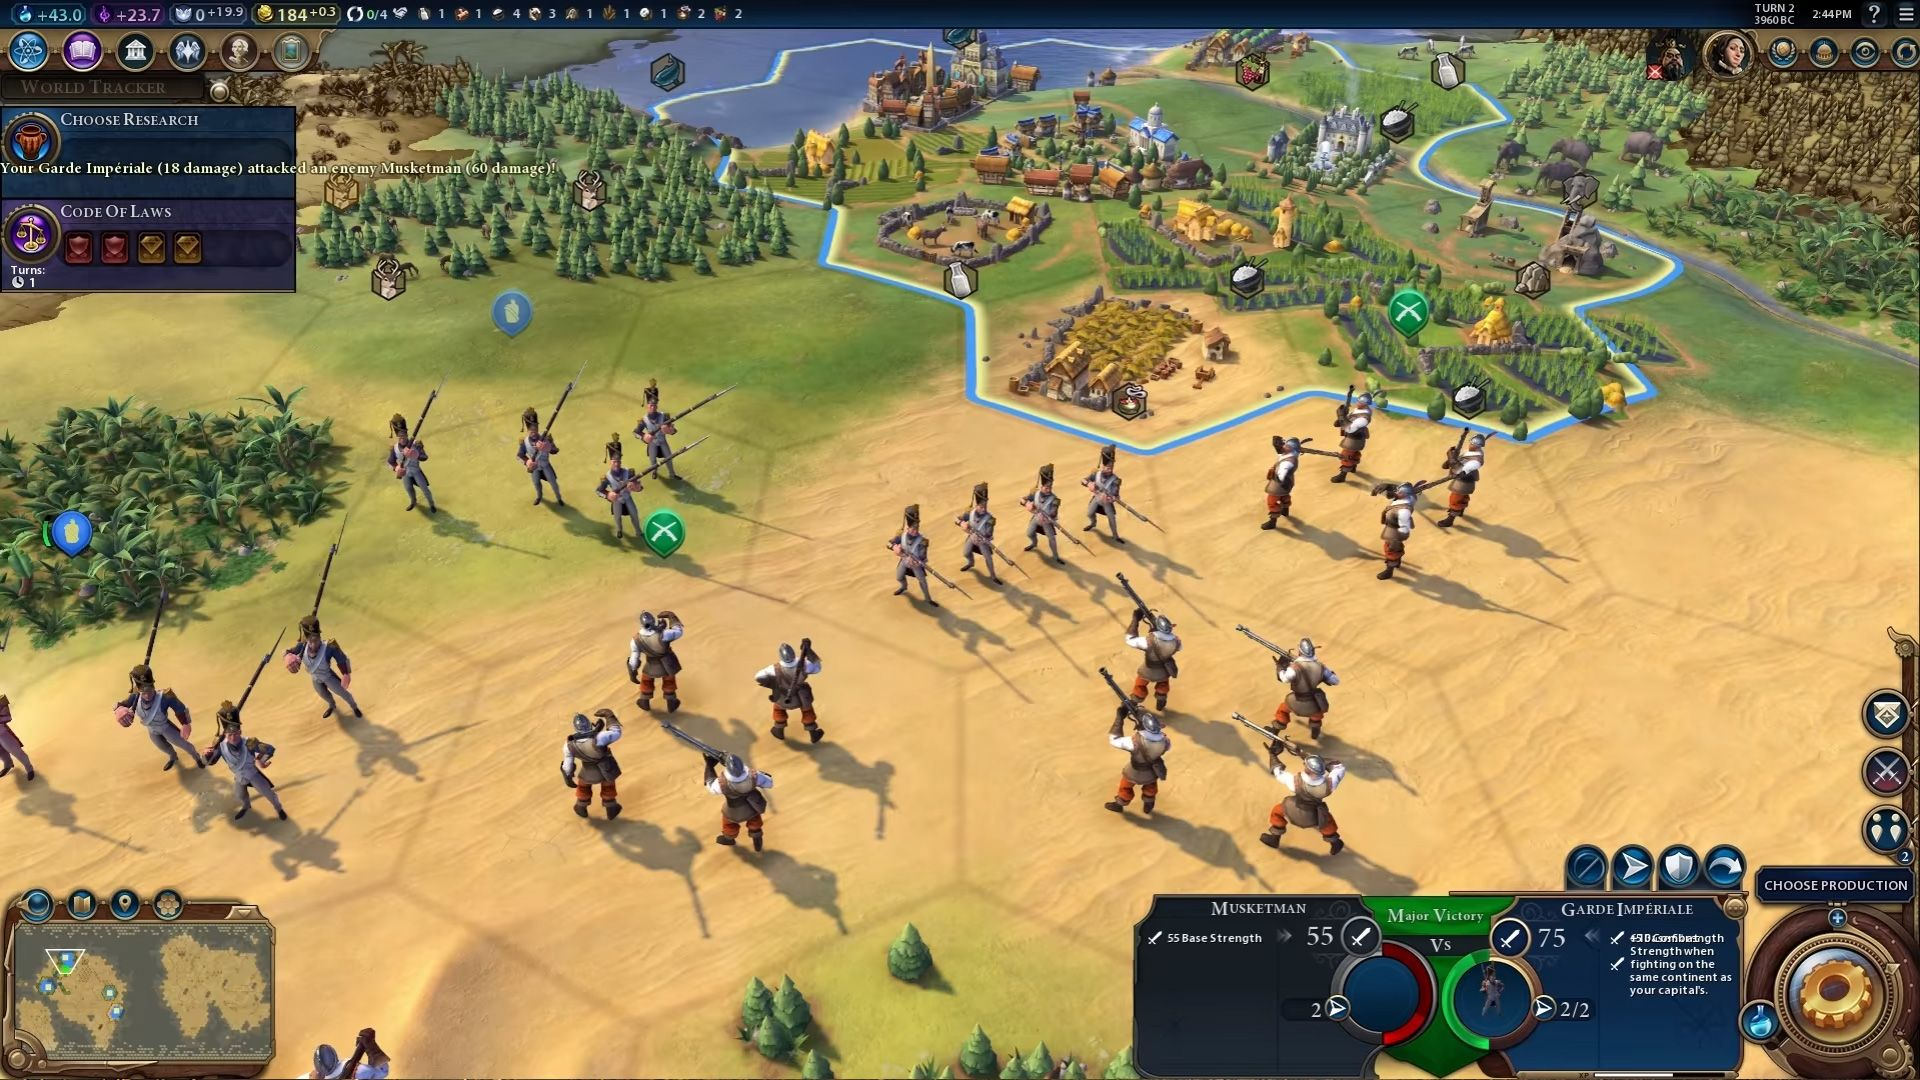 Скриншот Sid Meier's Civilization 6 (2016) PC